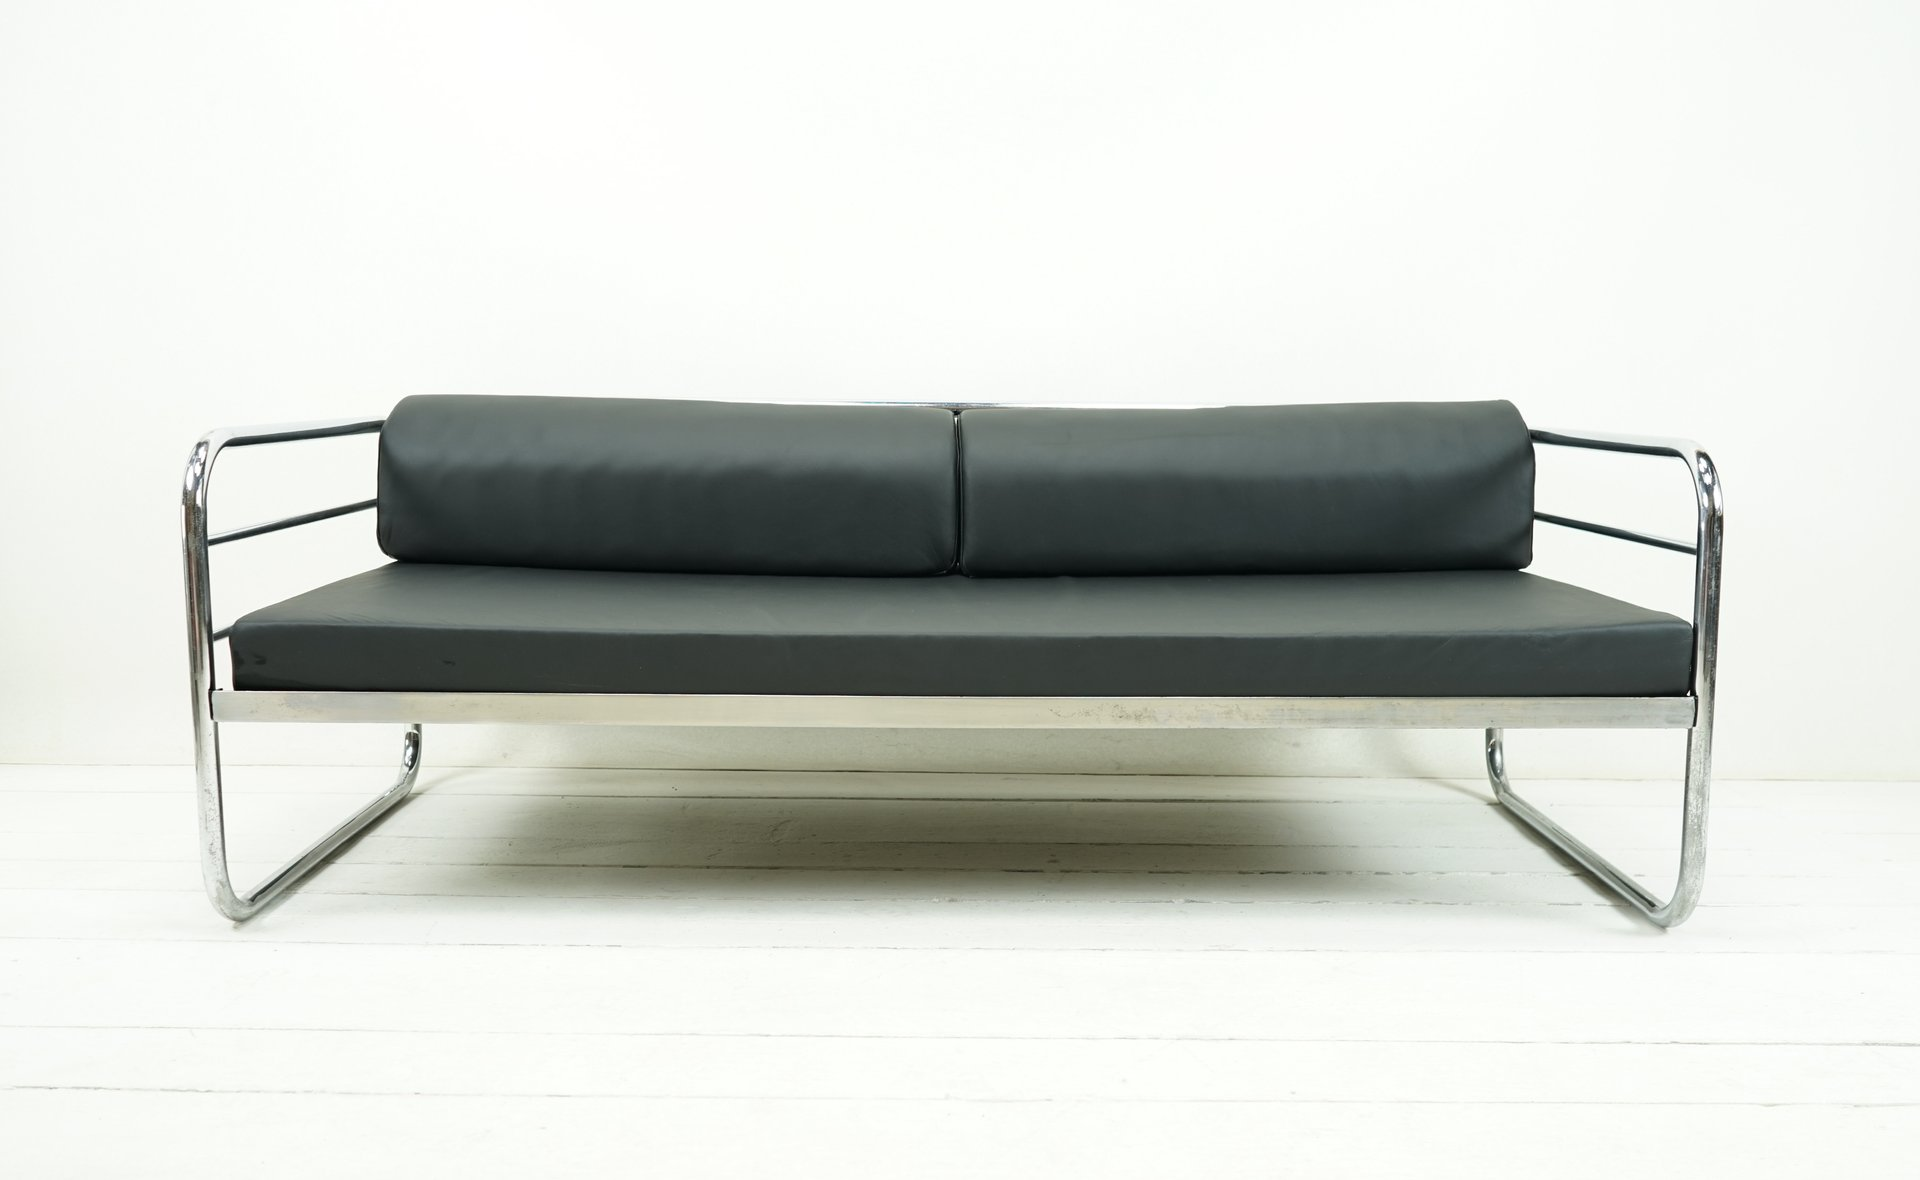 Vintage Bauhaus DaybedSofa from Muecke Melder for sale at Pamono